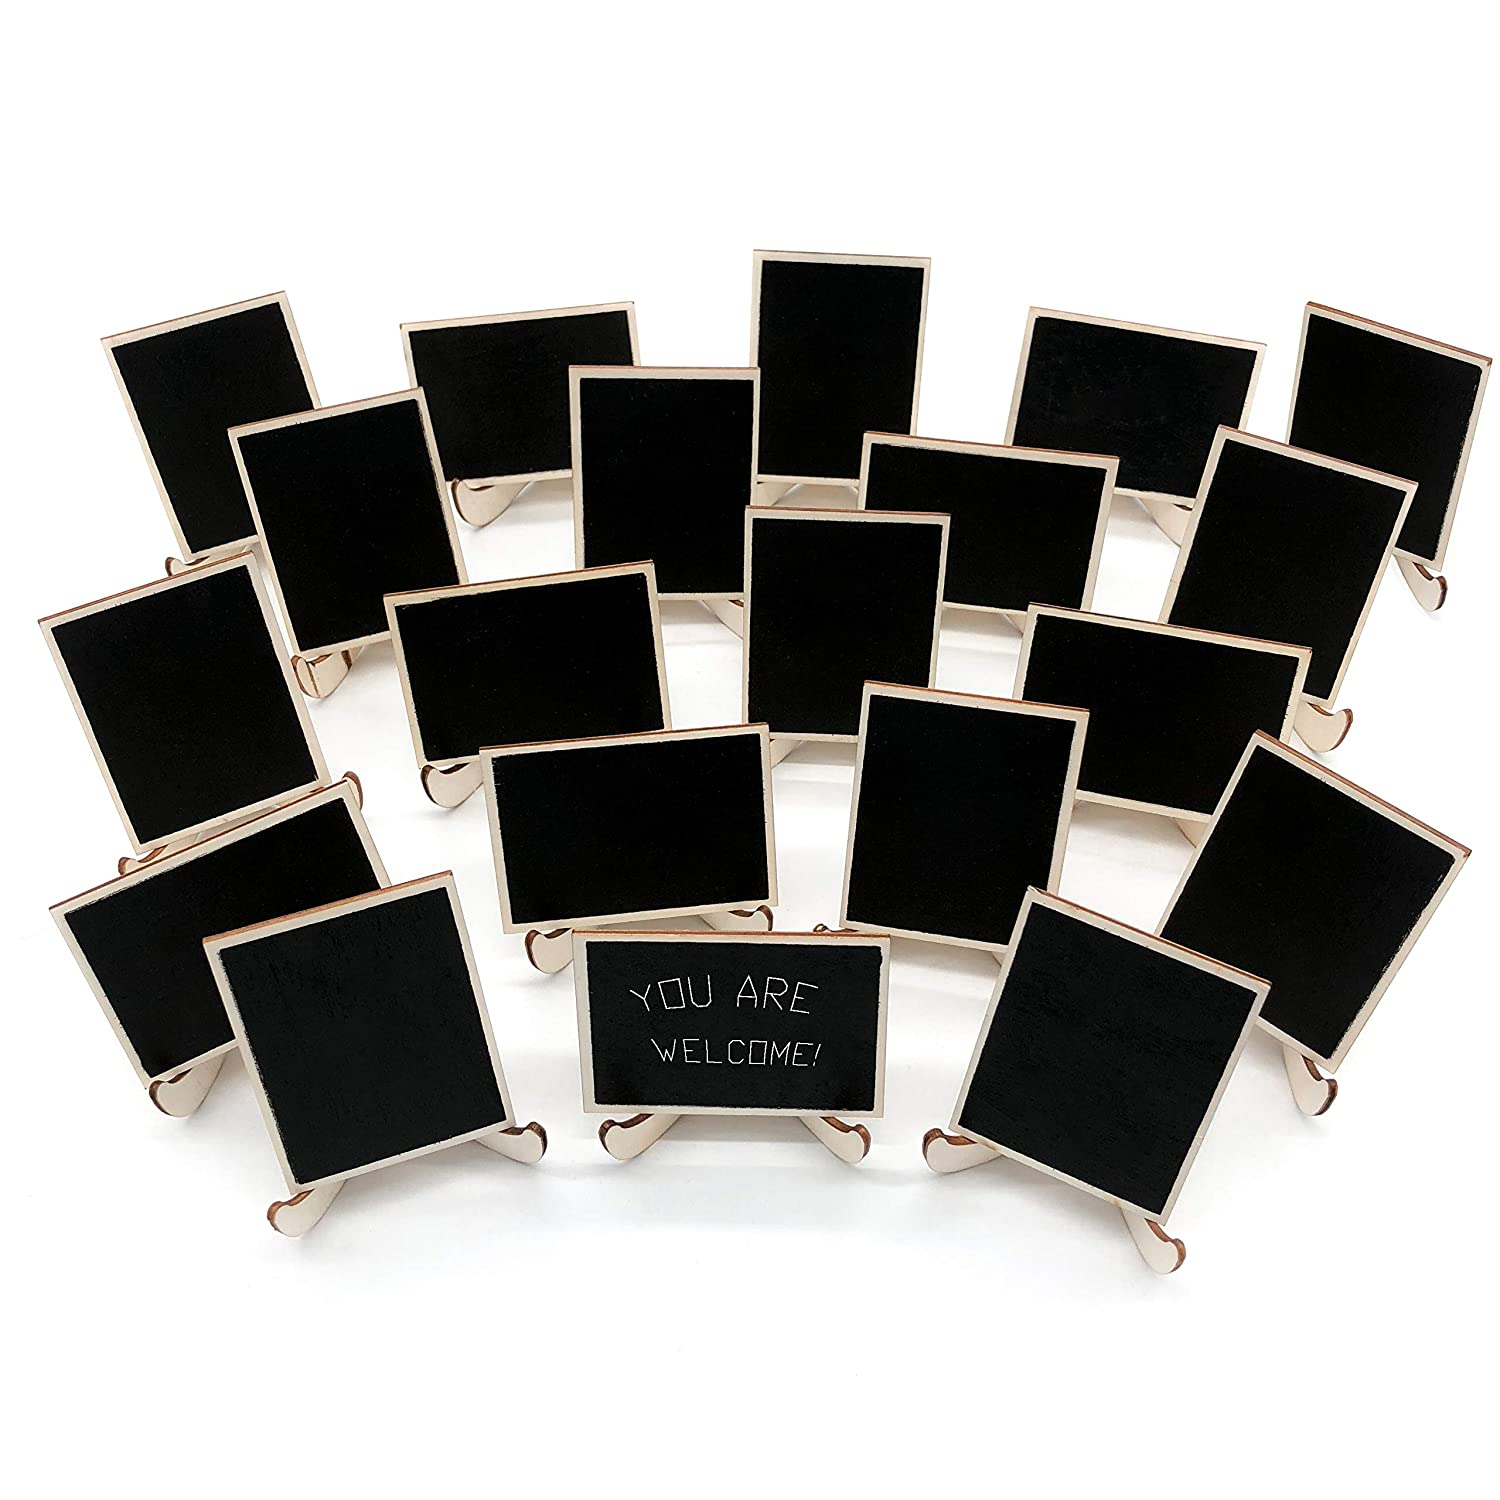 20 Pack Wood Mini Chalkboards Signs with Support Easels, Place Cards, Small Rectangle Chalkboards Blackboard for Weddings, Birthday Parties, Message Board Signs and Event Decorations Wit.J.Corn